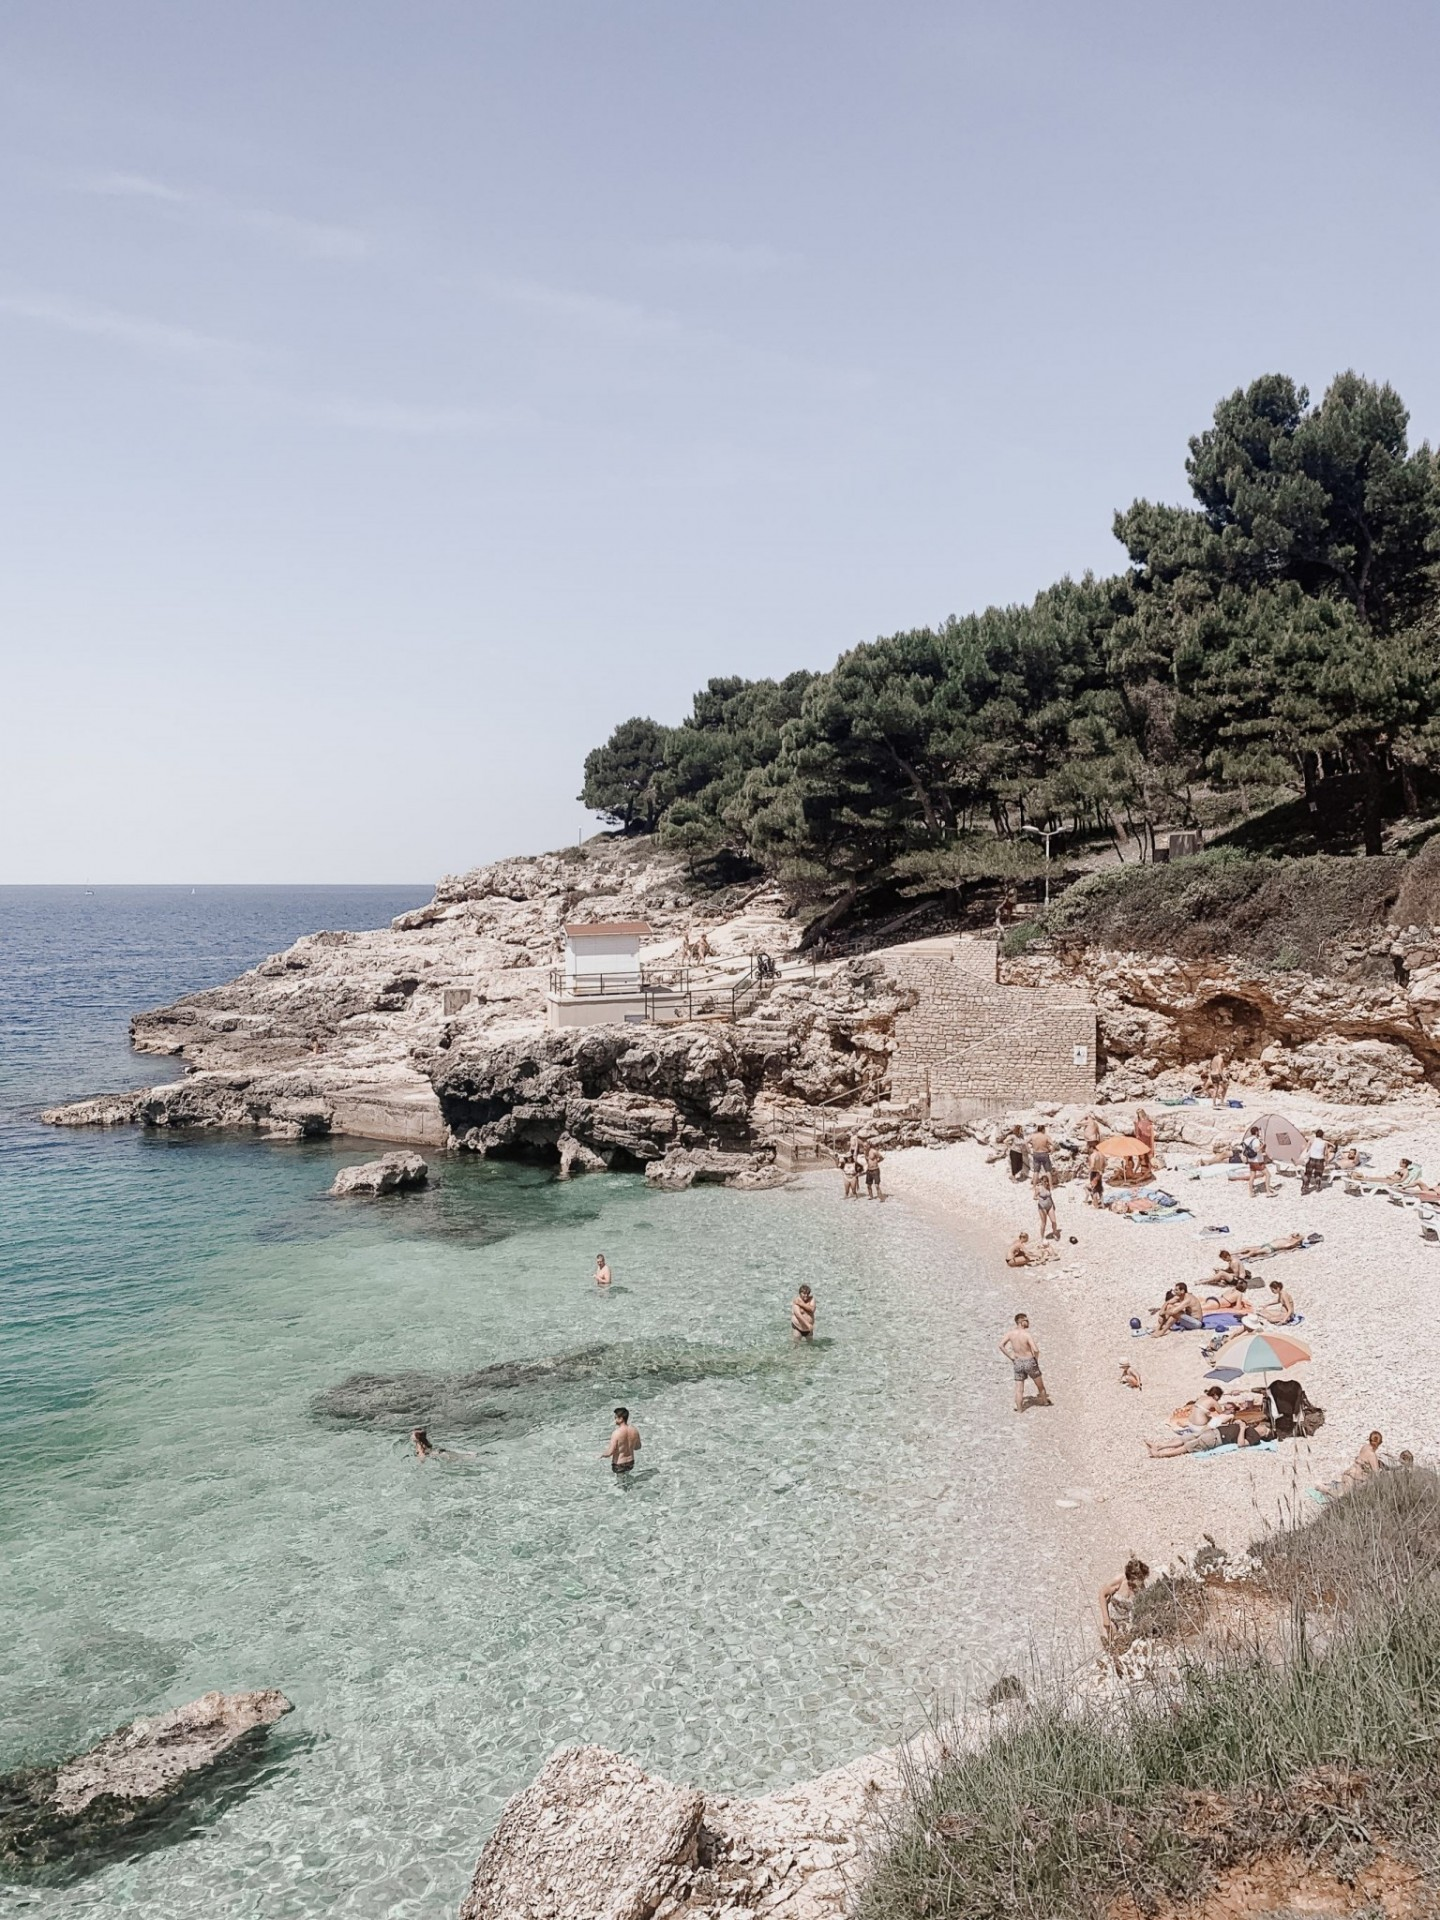 Lifestyle blogger Mollie Moore shares an Istria, Croatia travel guide. | Istria, Croatia Travel guide by popular London fashion and travel blogger Mollie Moore: image of people sitting on a beach and swimming in the Adriatic Sea in Istria, Croatia.